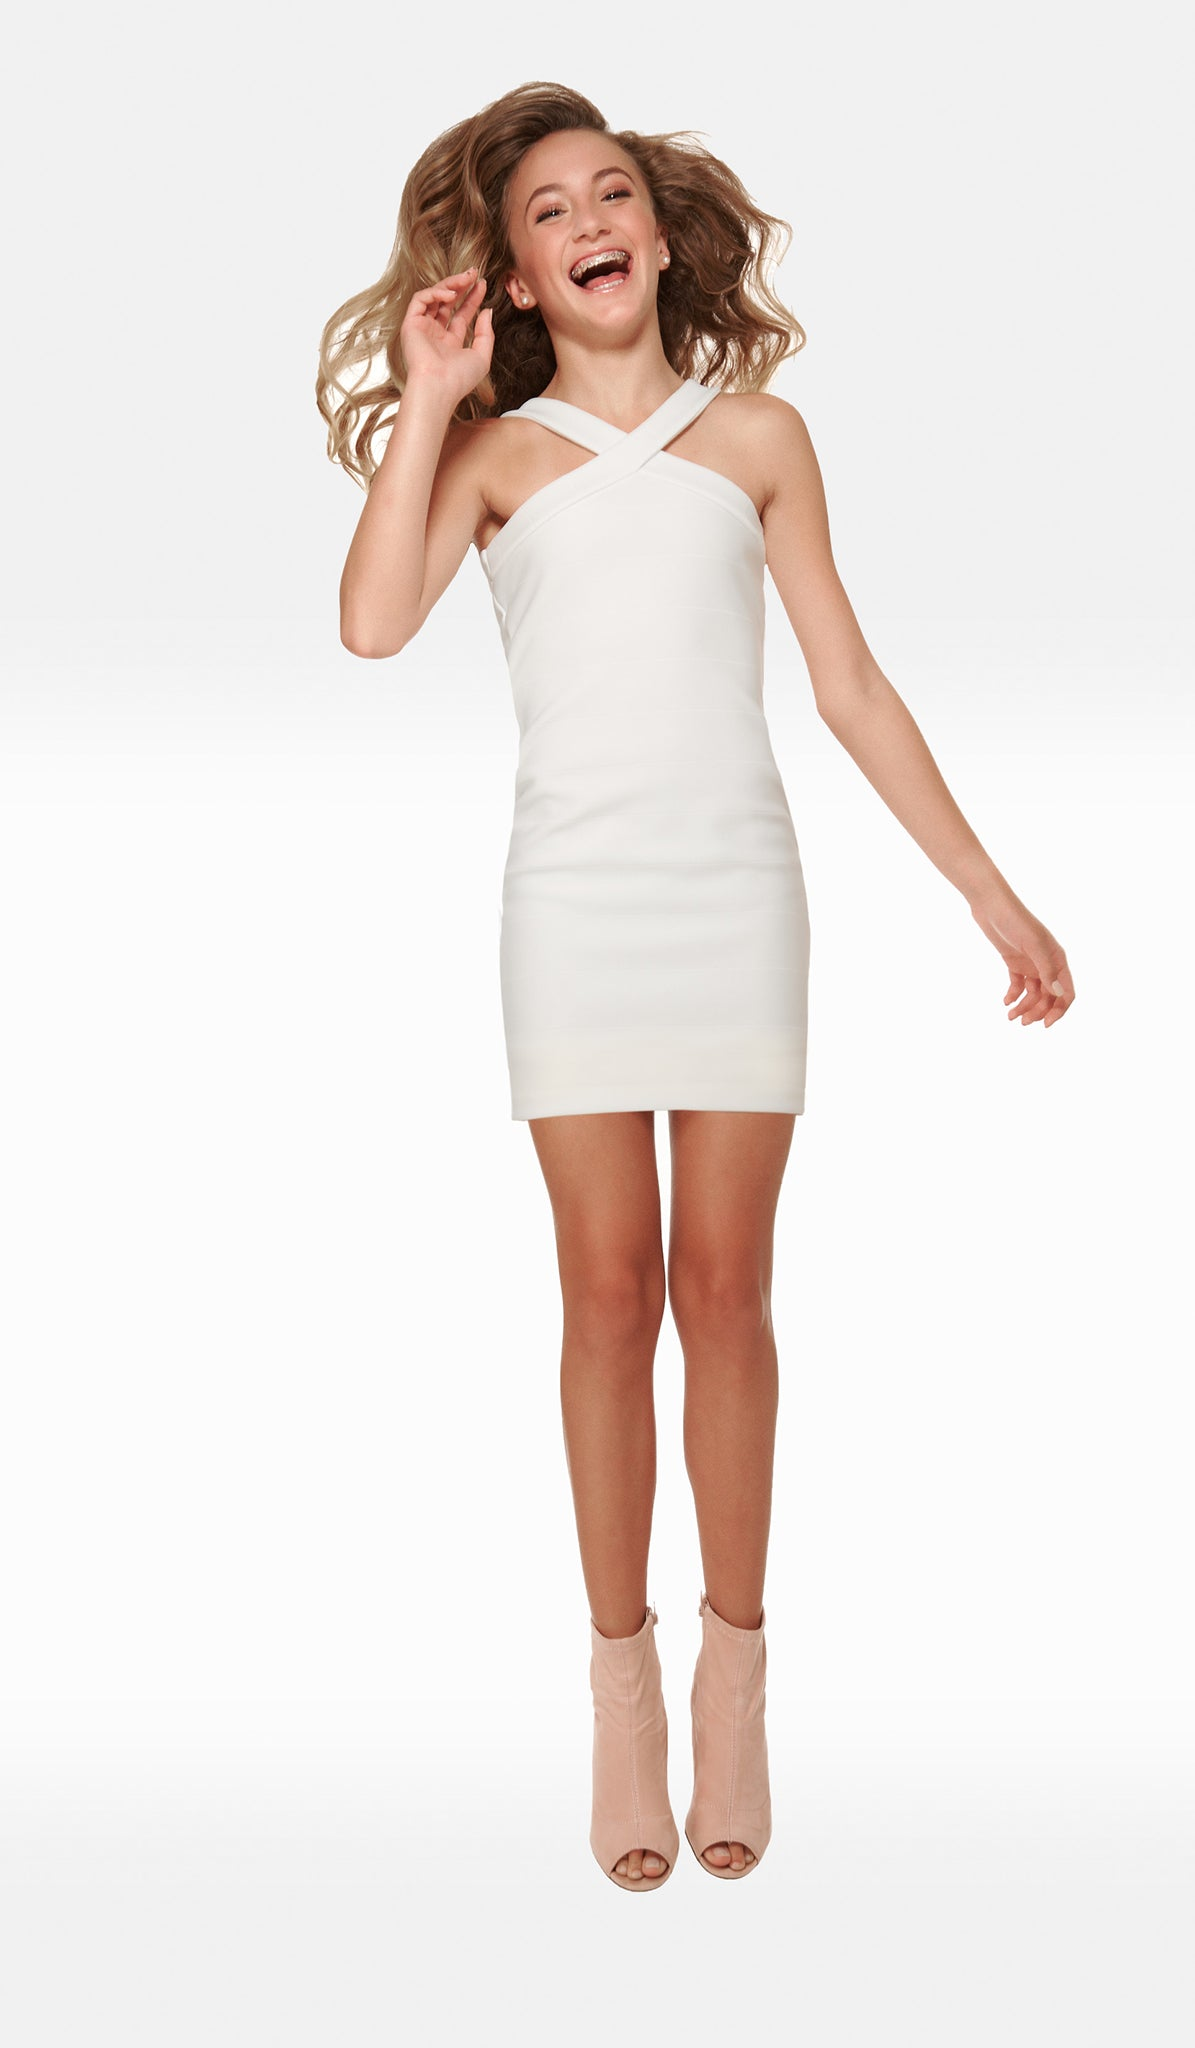 THE SIERRA DRESS (JUNIORS) - Sallymiller.com - [variant title] - | Event & Party Dresses for Tween Girls & Juniors | Weddings Dresses, Bat Mitzvah Dresses, Sweet Sixteen Dresses, Graduation Dresses, Birthday Party Dresses, Bar Mitzvah Dresses, Cotillion Dresses